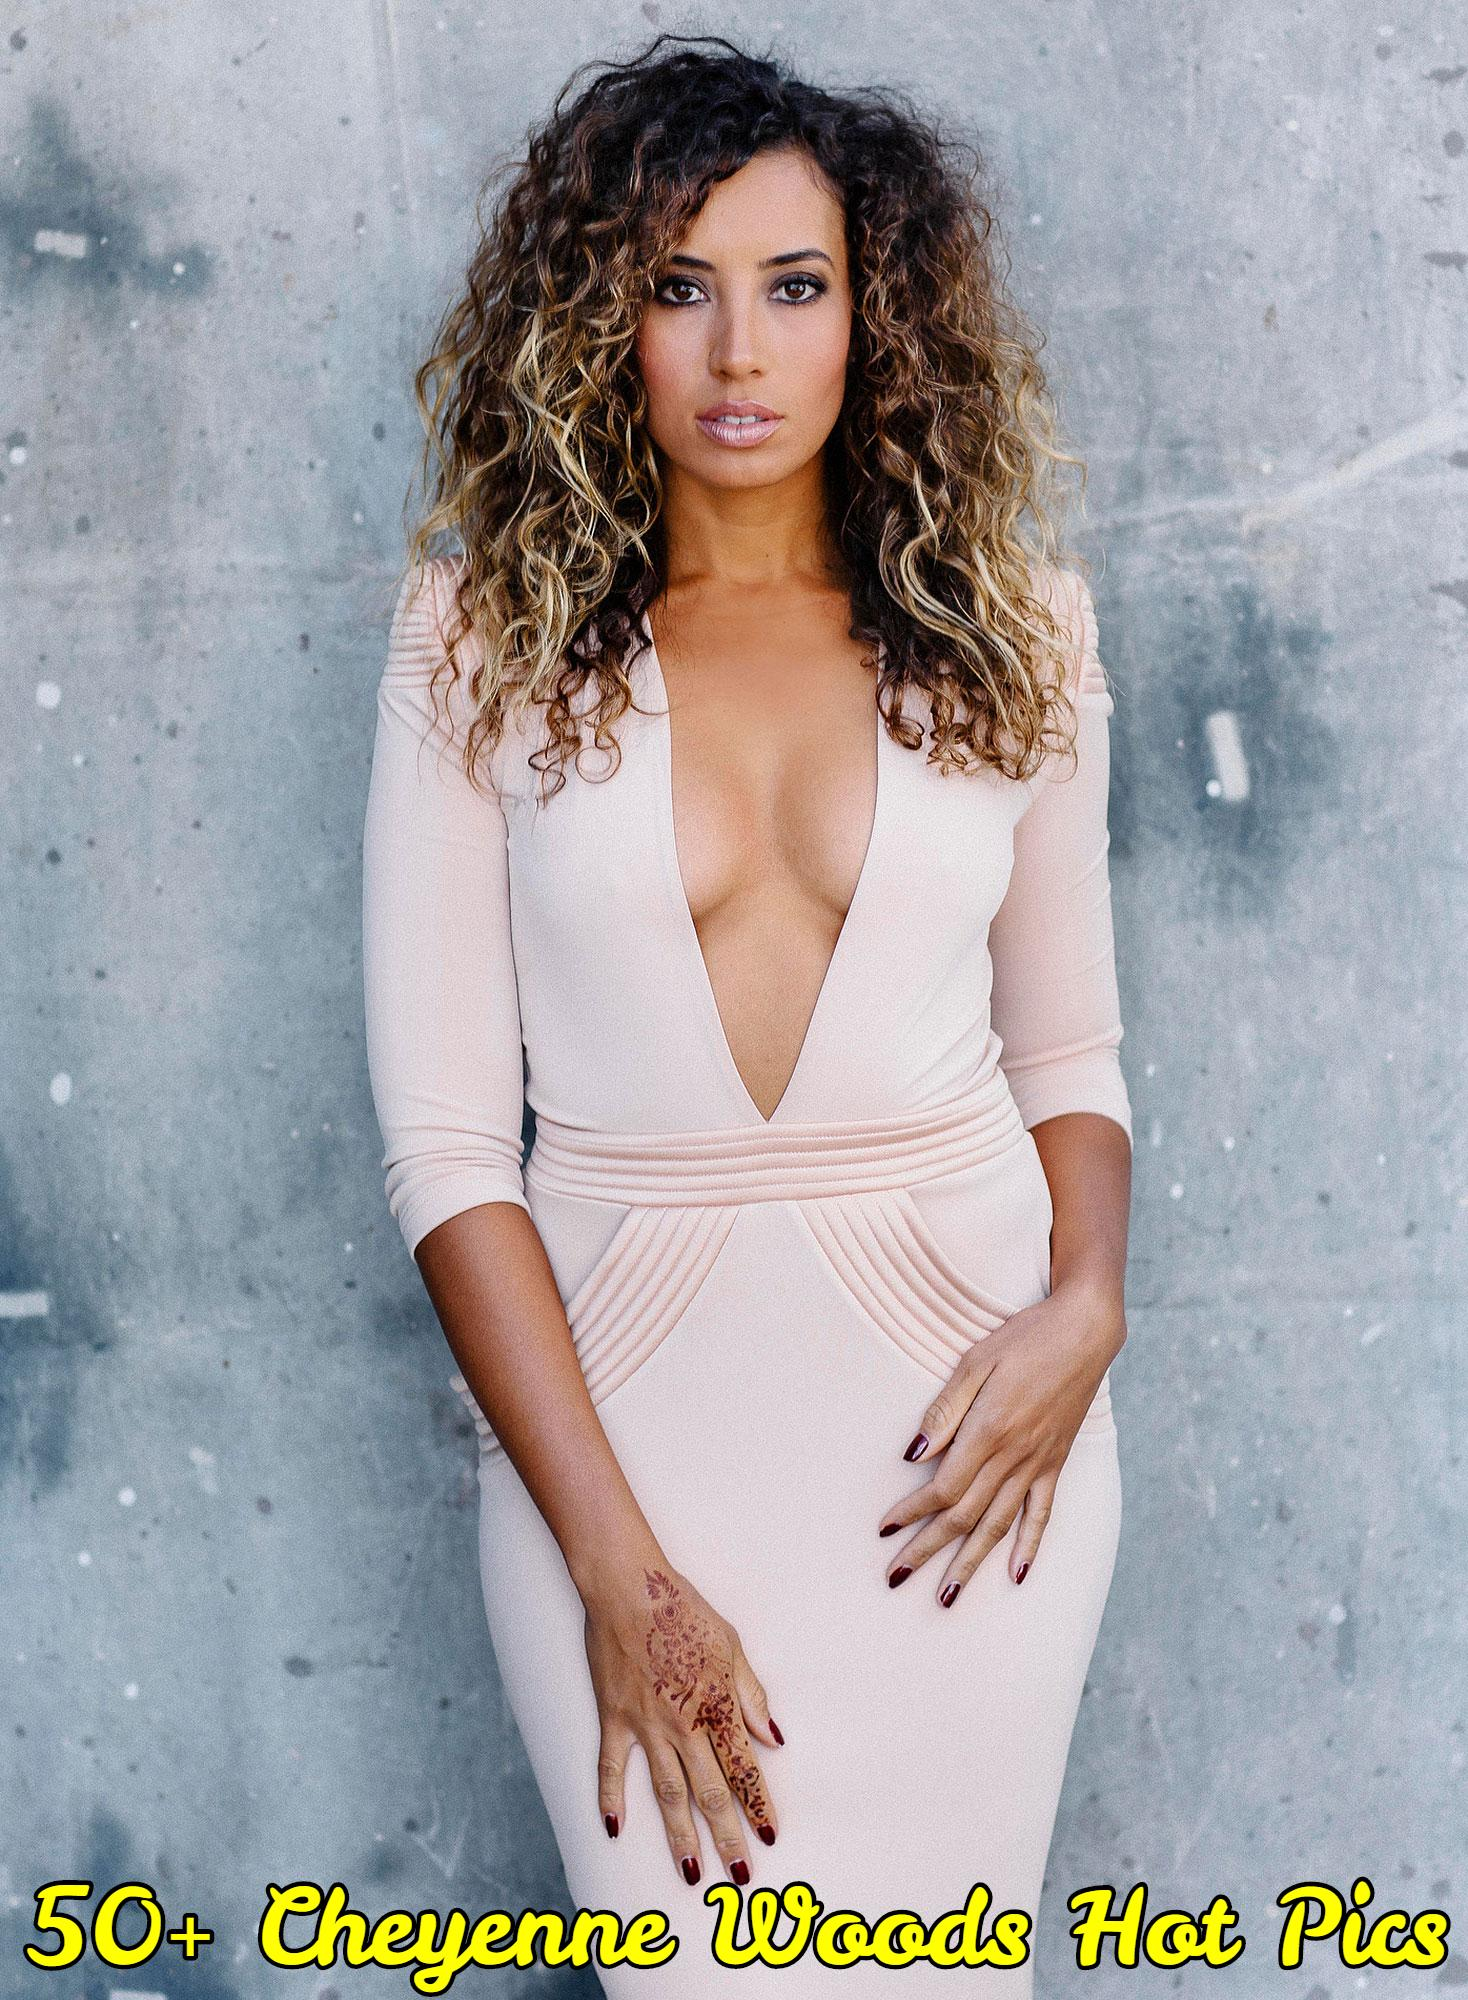 cheyenne woods hot pics